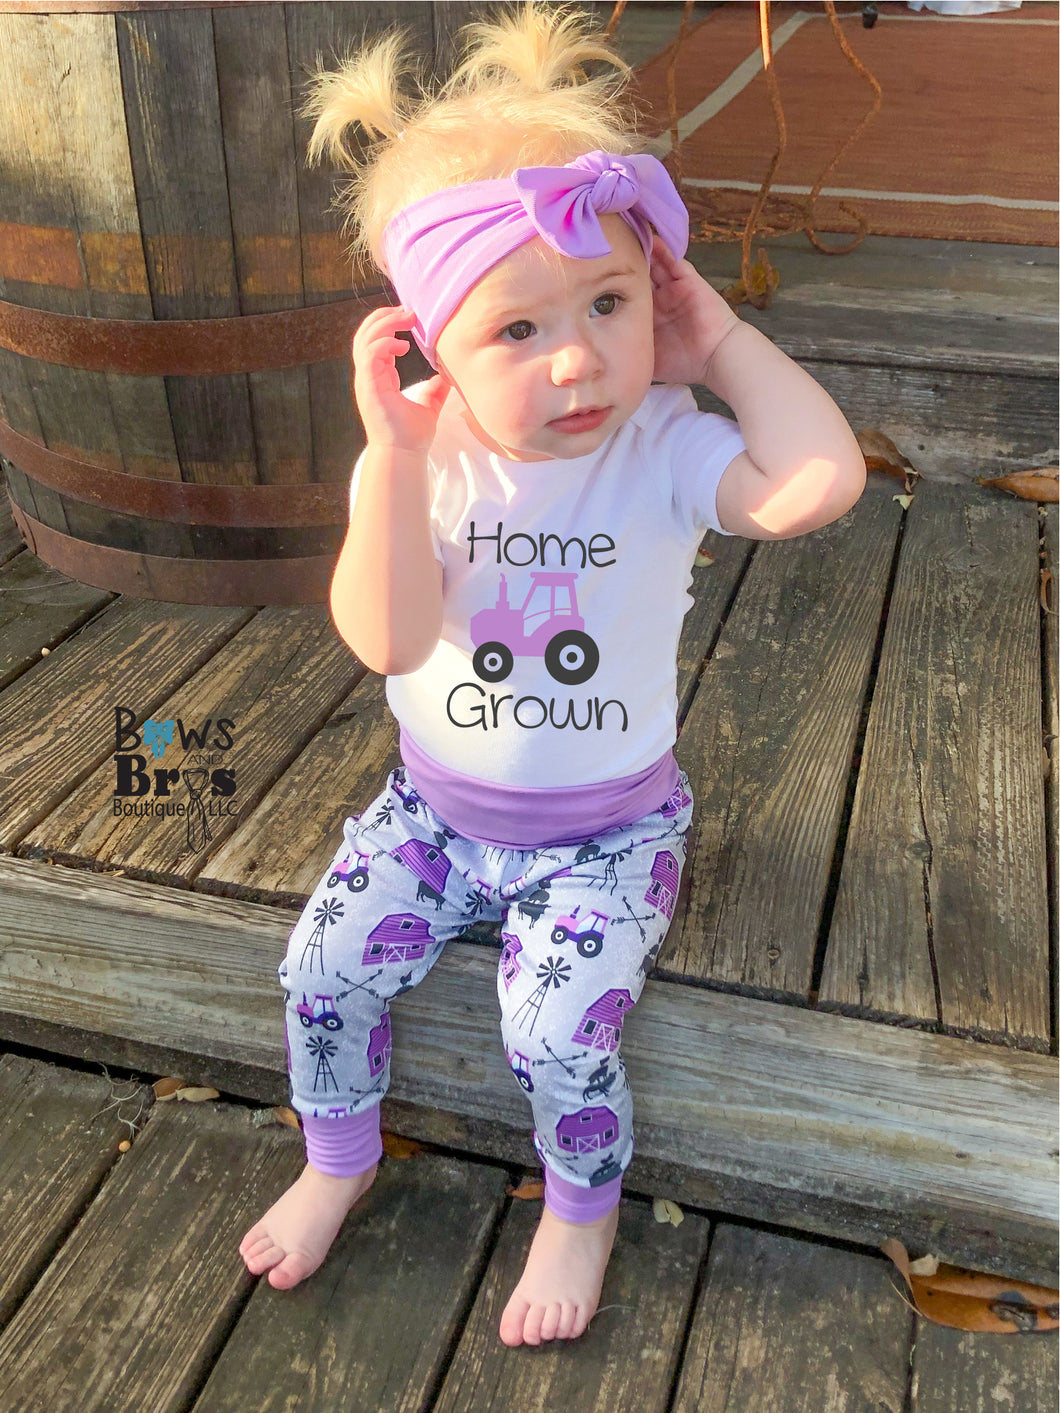 Home Grown Purple Baby Girl Farm Coming Home Outfit - 1,2,3,4 or 5 Piece Set - Bows and Bros Boutique LLC